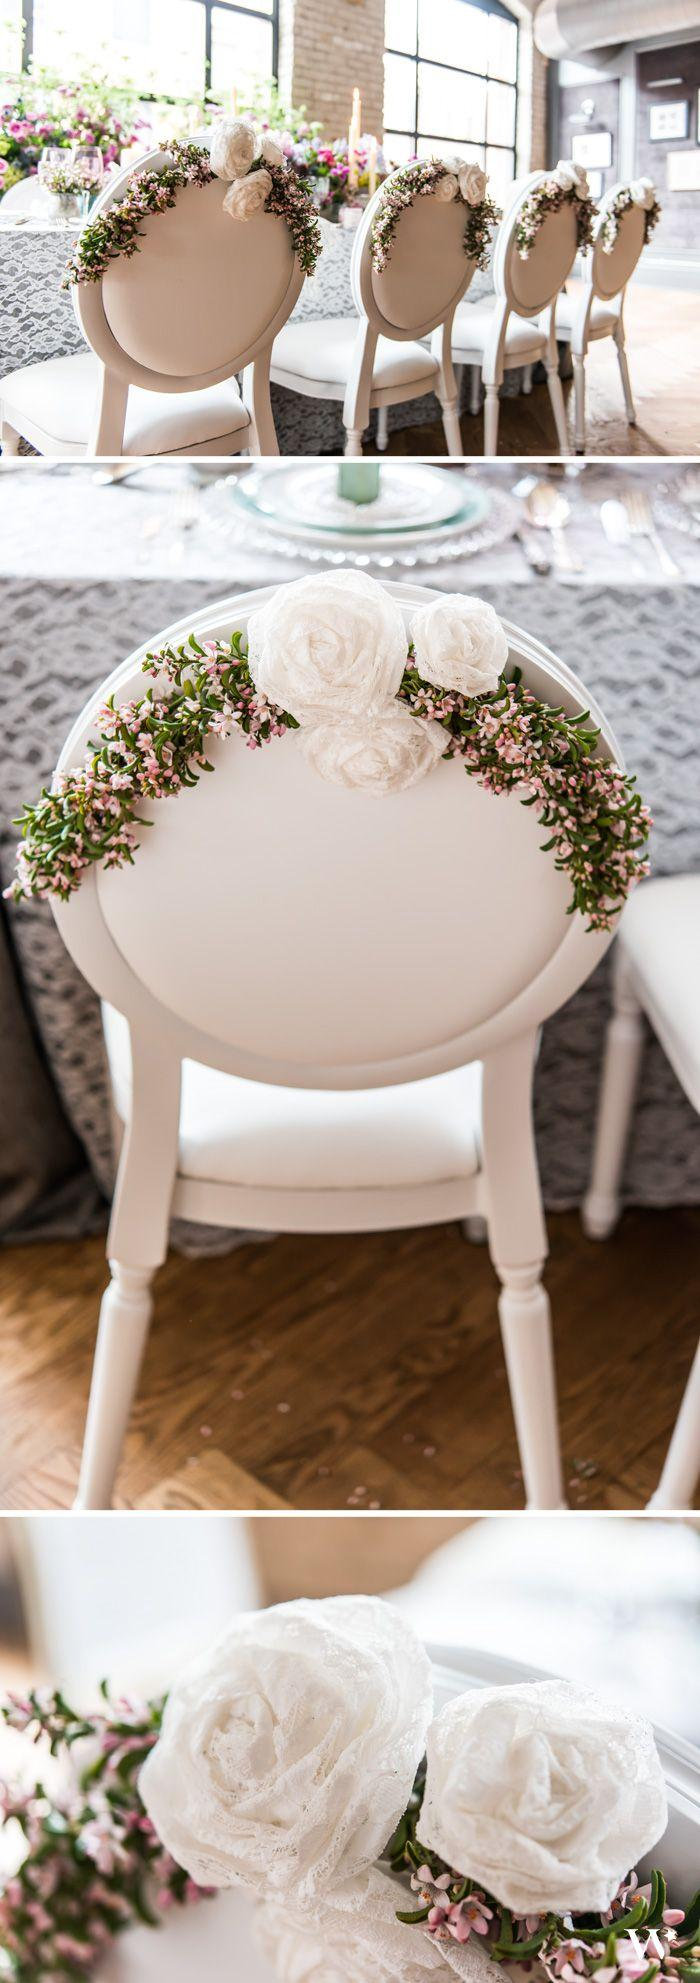 Mariage - Decorative Rolled Fabric Lace Flowers - Medium